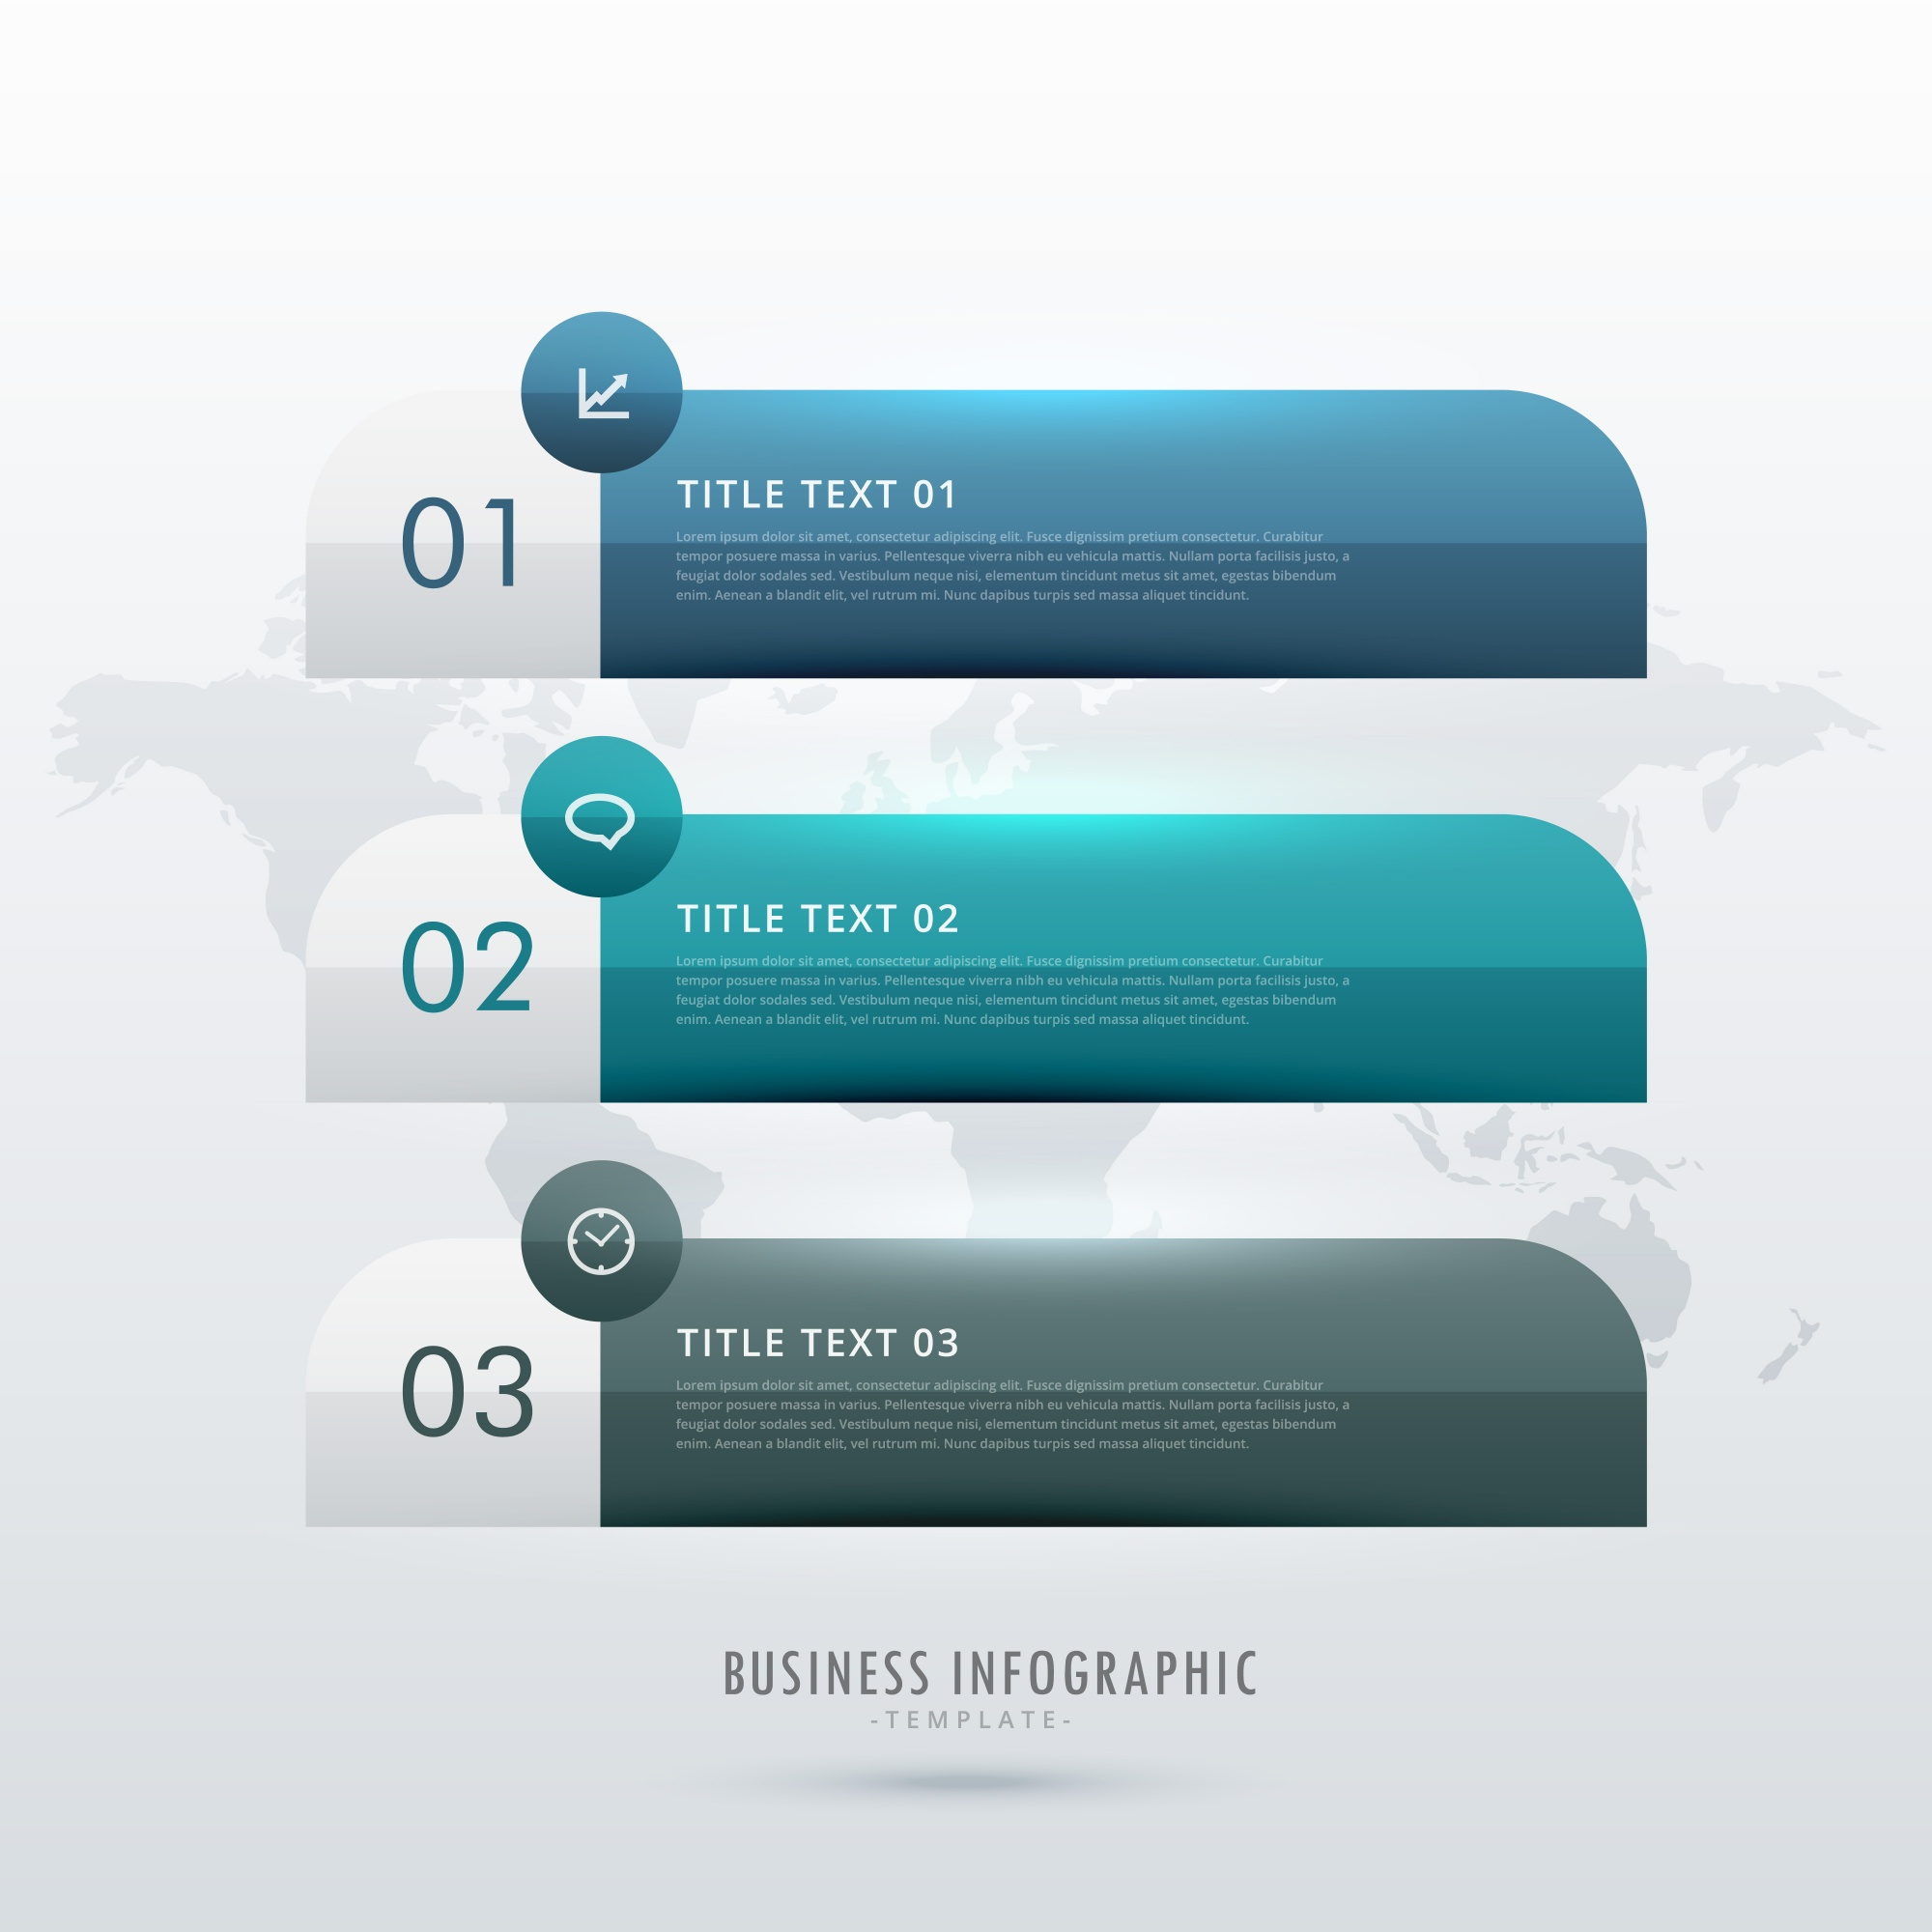 Three steps infographic template for your business presentation